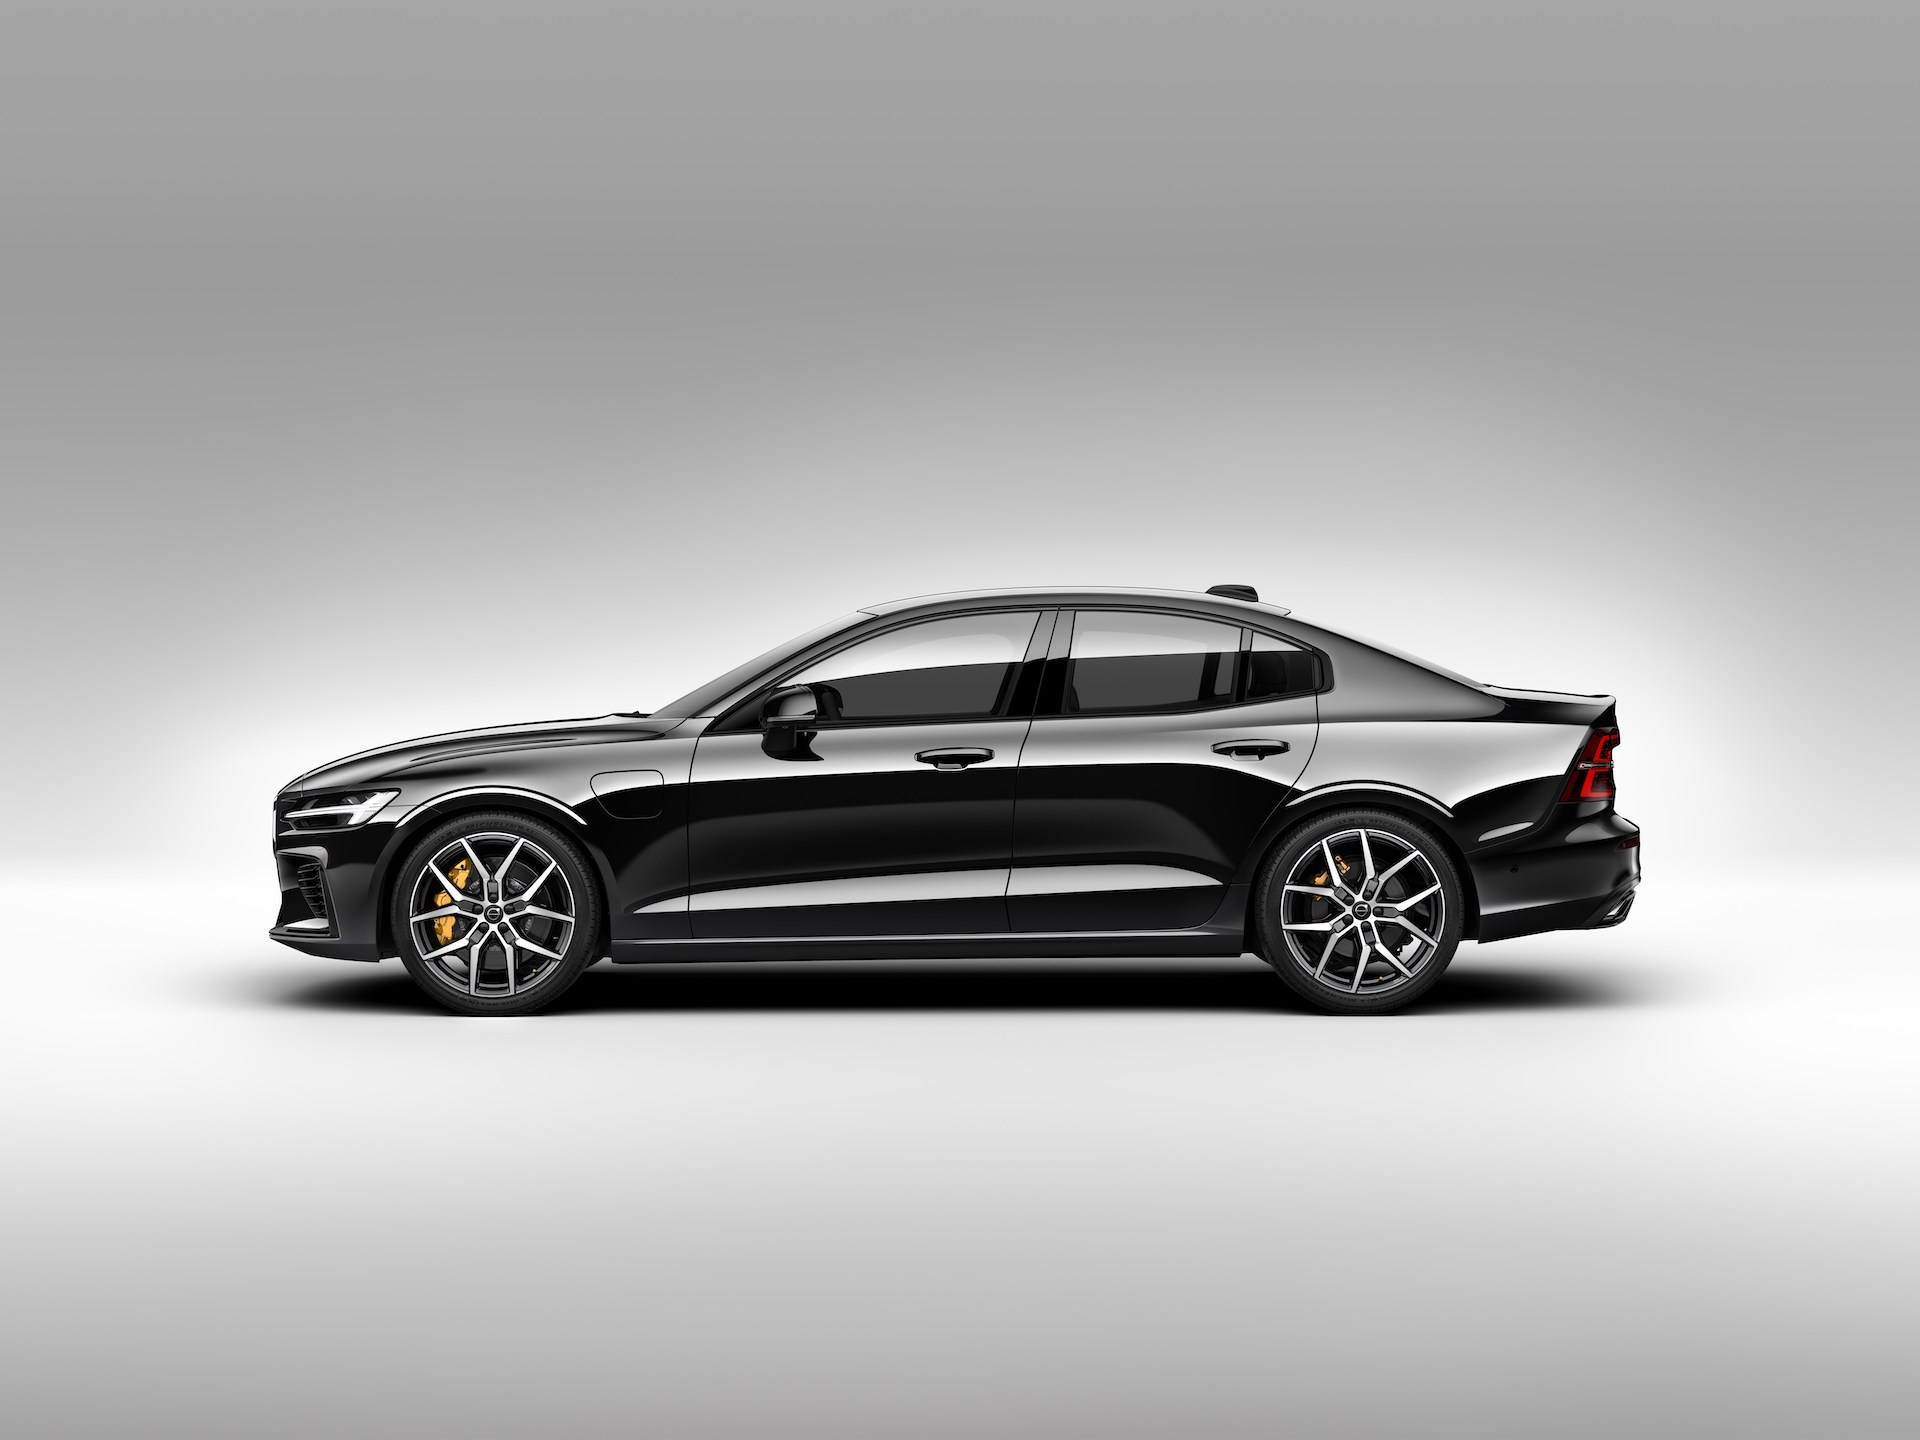 Plug-in hybrids top 20% of Volvo's US sales